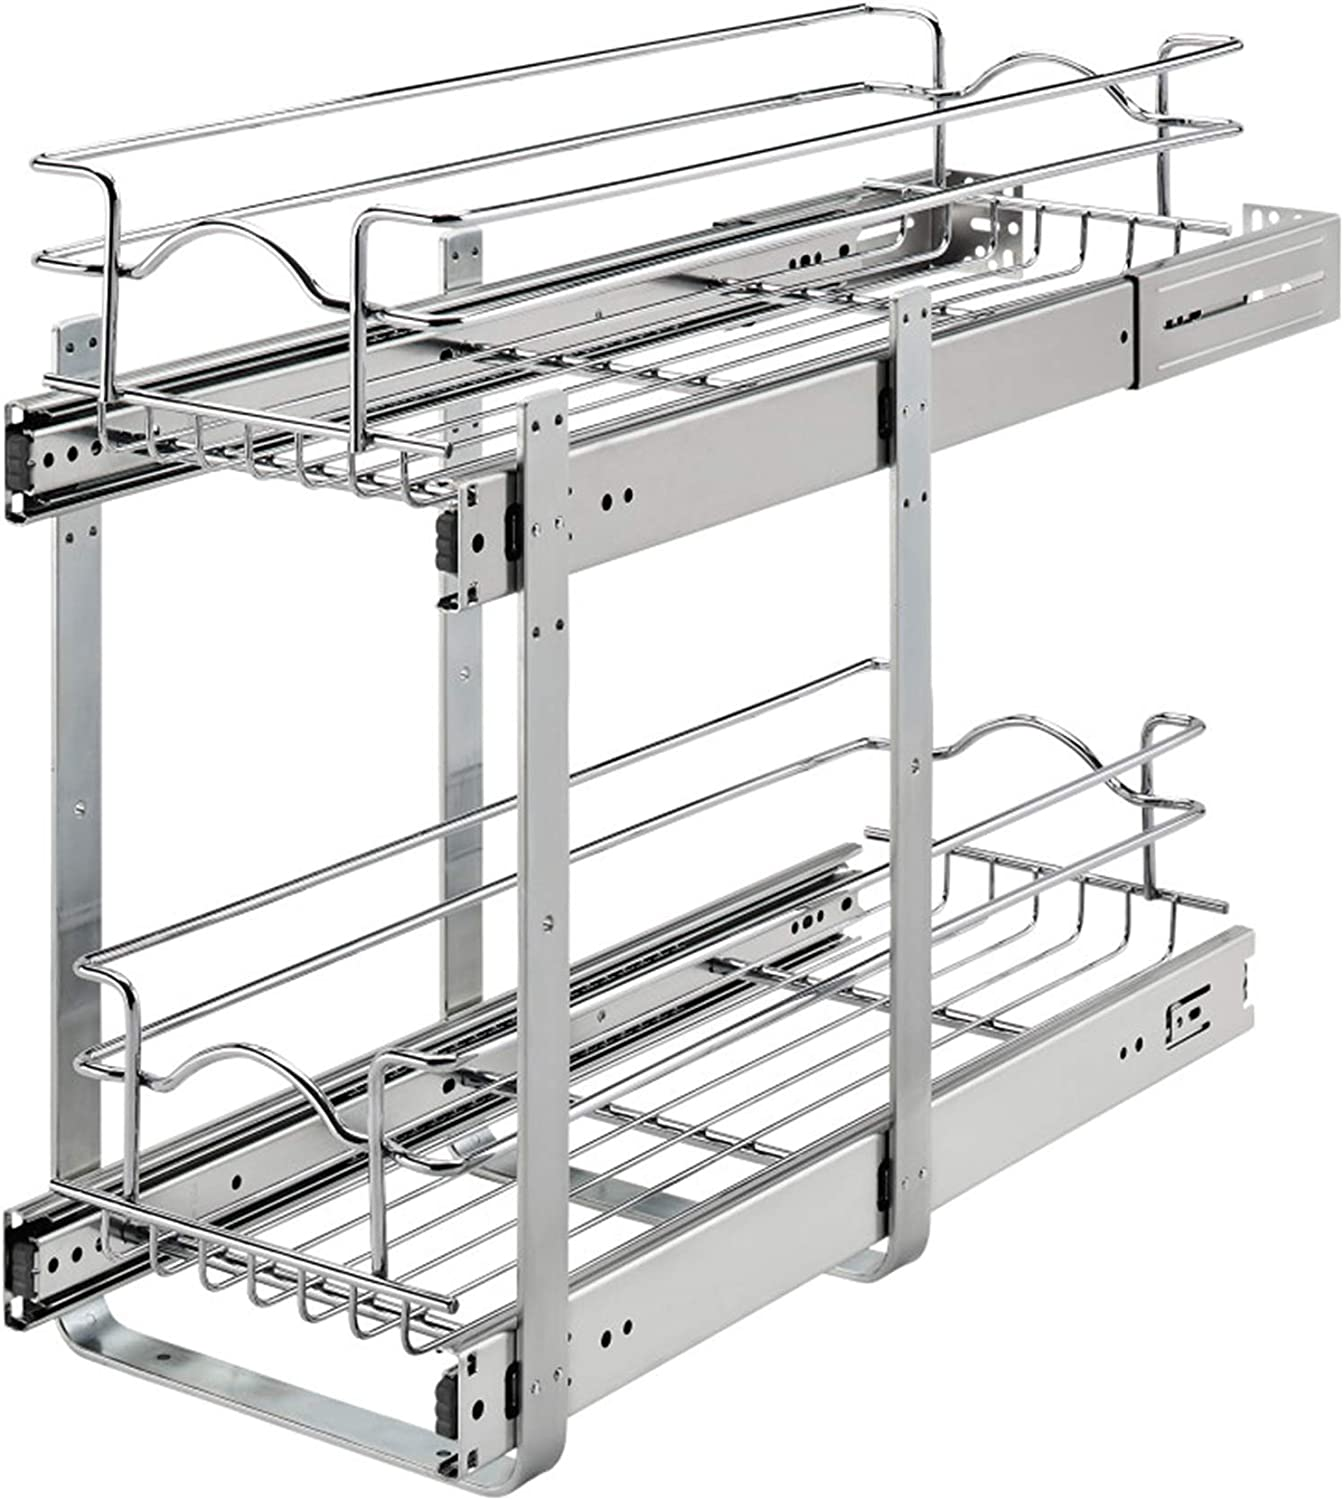 Rev-A-Shelf 5WB2-0922CR-1 9 x 22 Inch Two-Tier Kitchen Organization Cabinet Pull Out Storage Wire Basket, Chrome